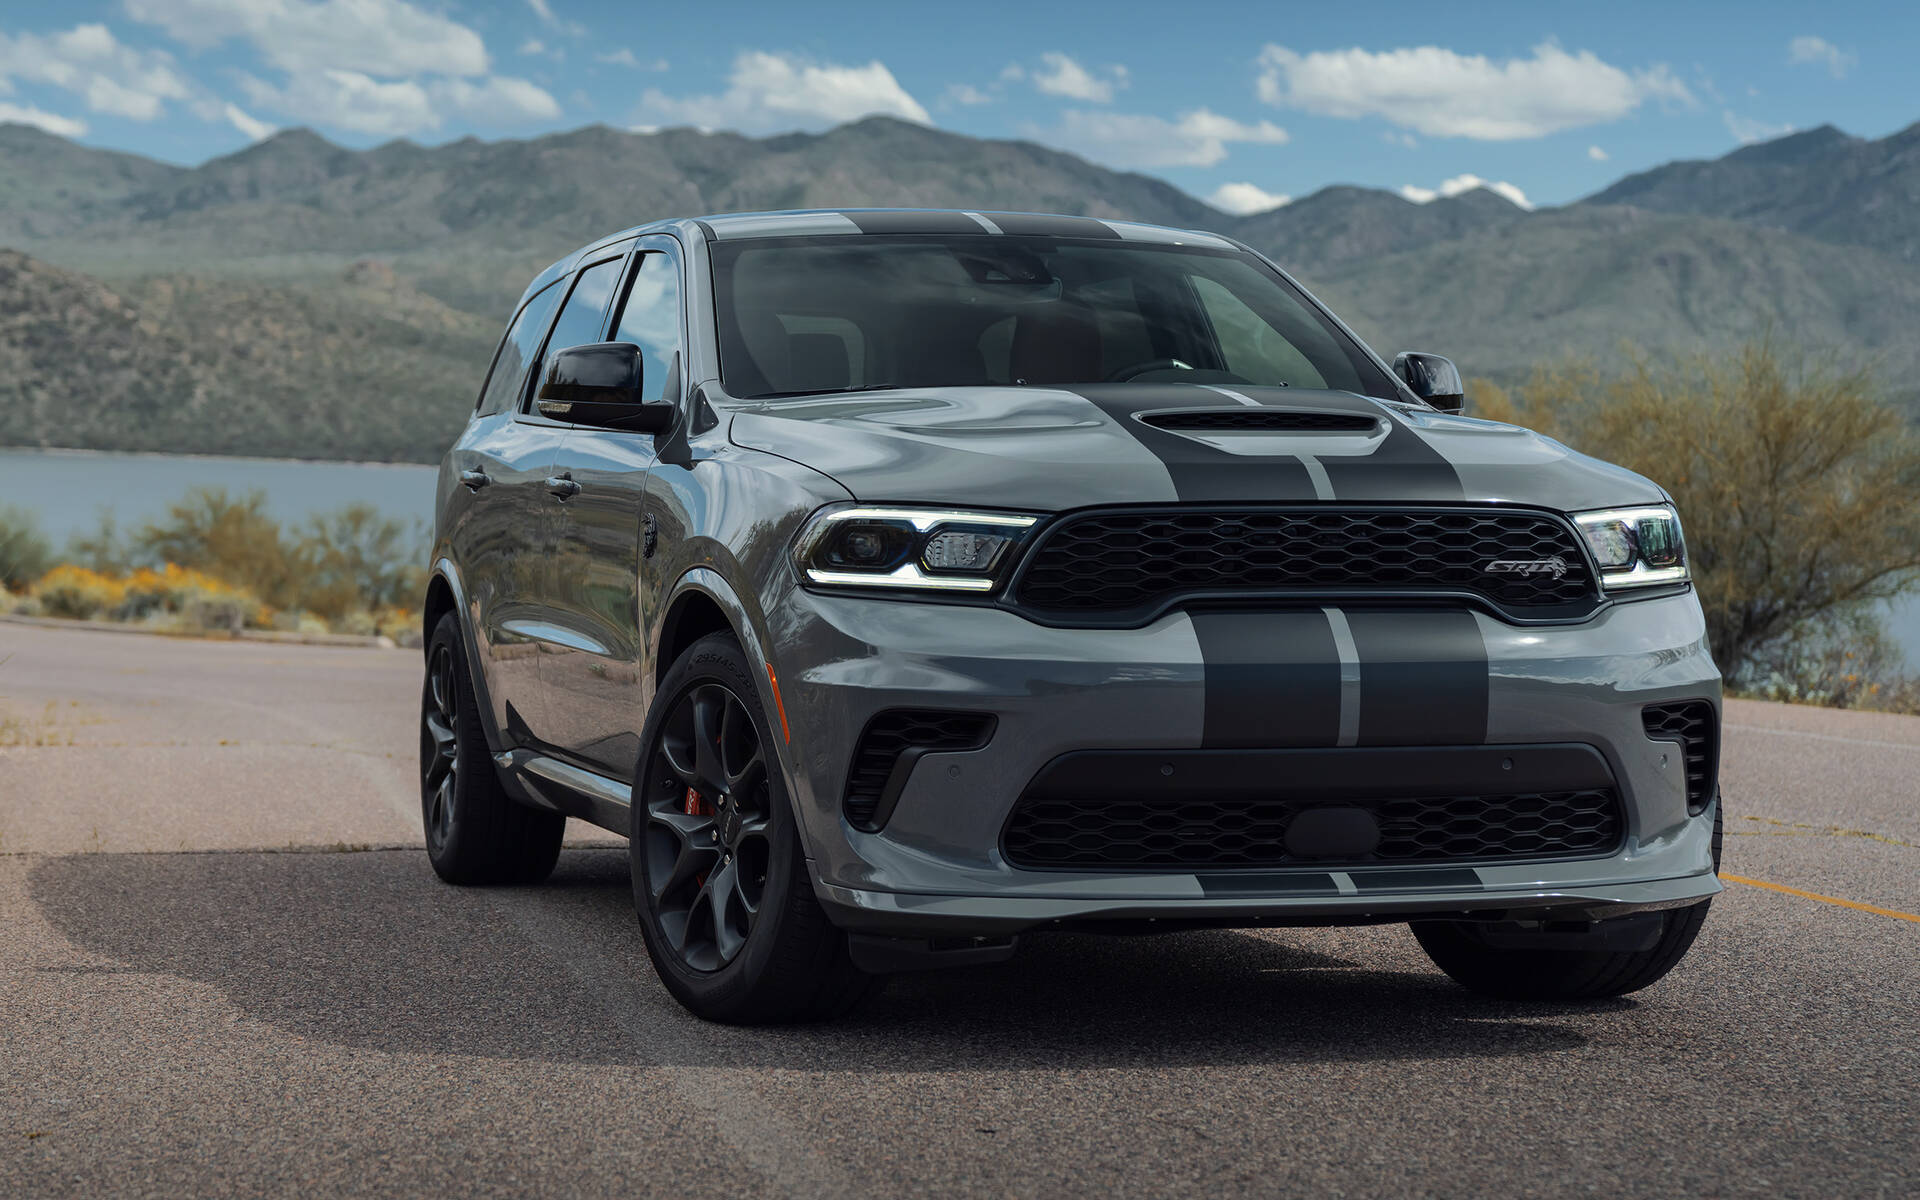 2021 Dodge Durango Five Things To Know The Car Guide